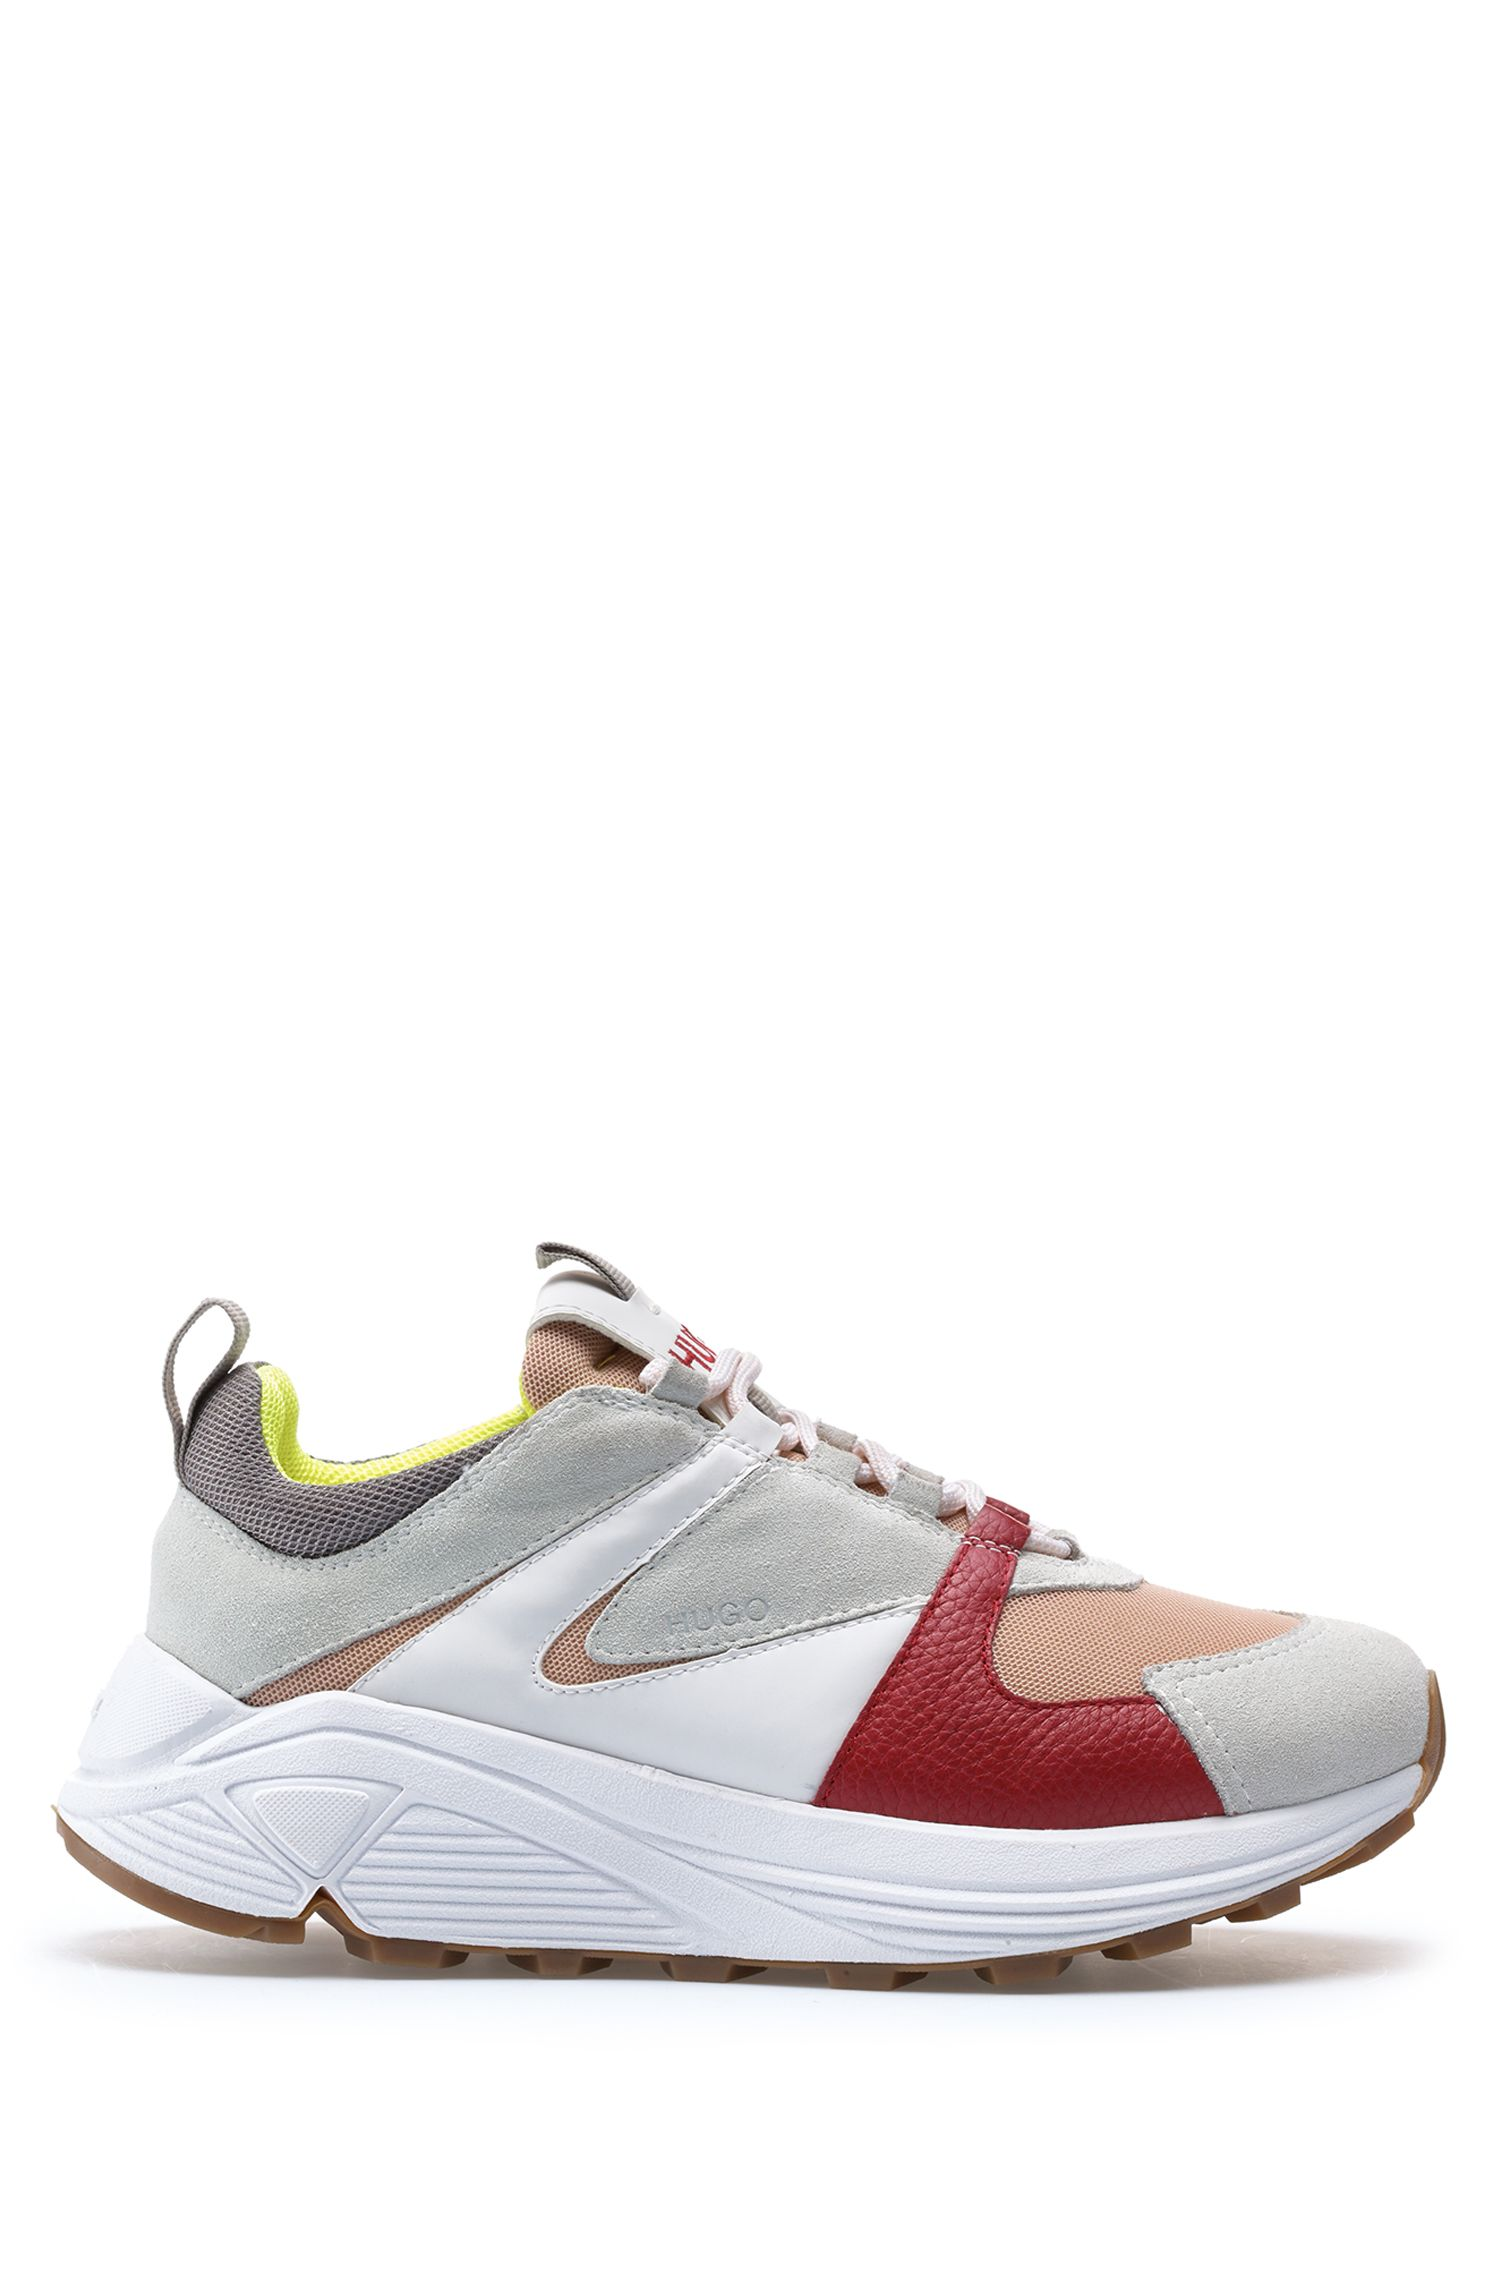 Lace-up trainers in suede, leather and mesh, Red